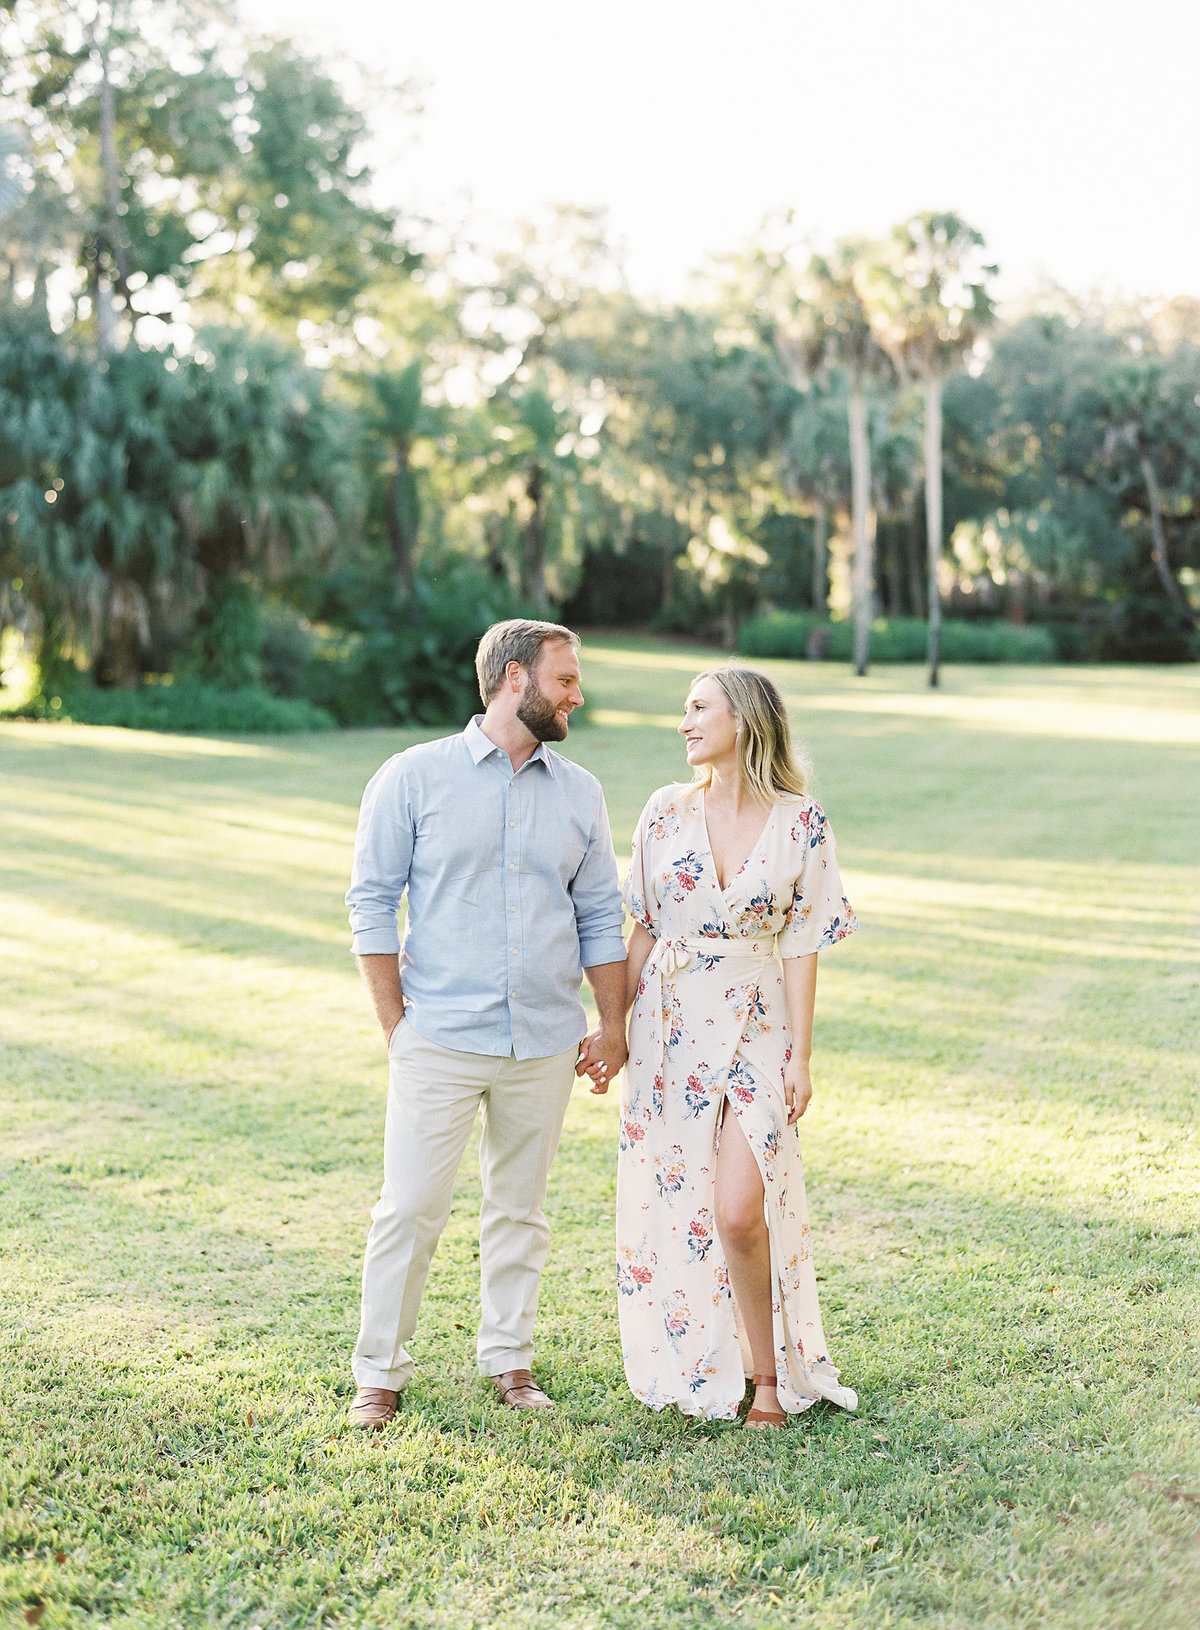 Bok_Tower_Garden_Film_Fine_Art_Engagement_Session-31